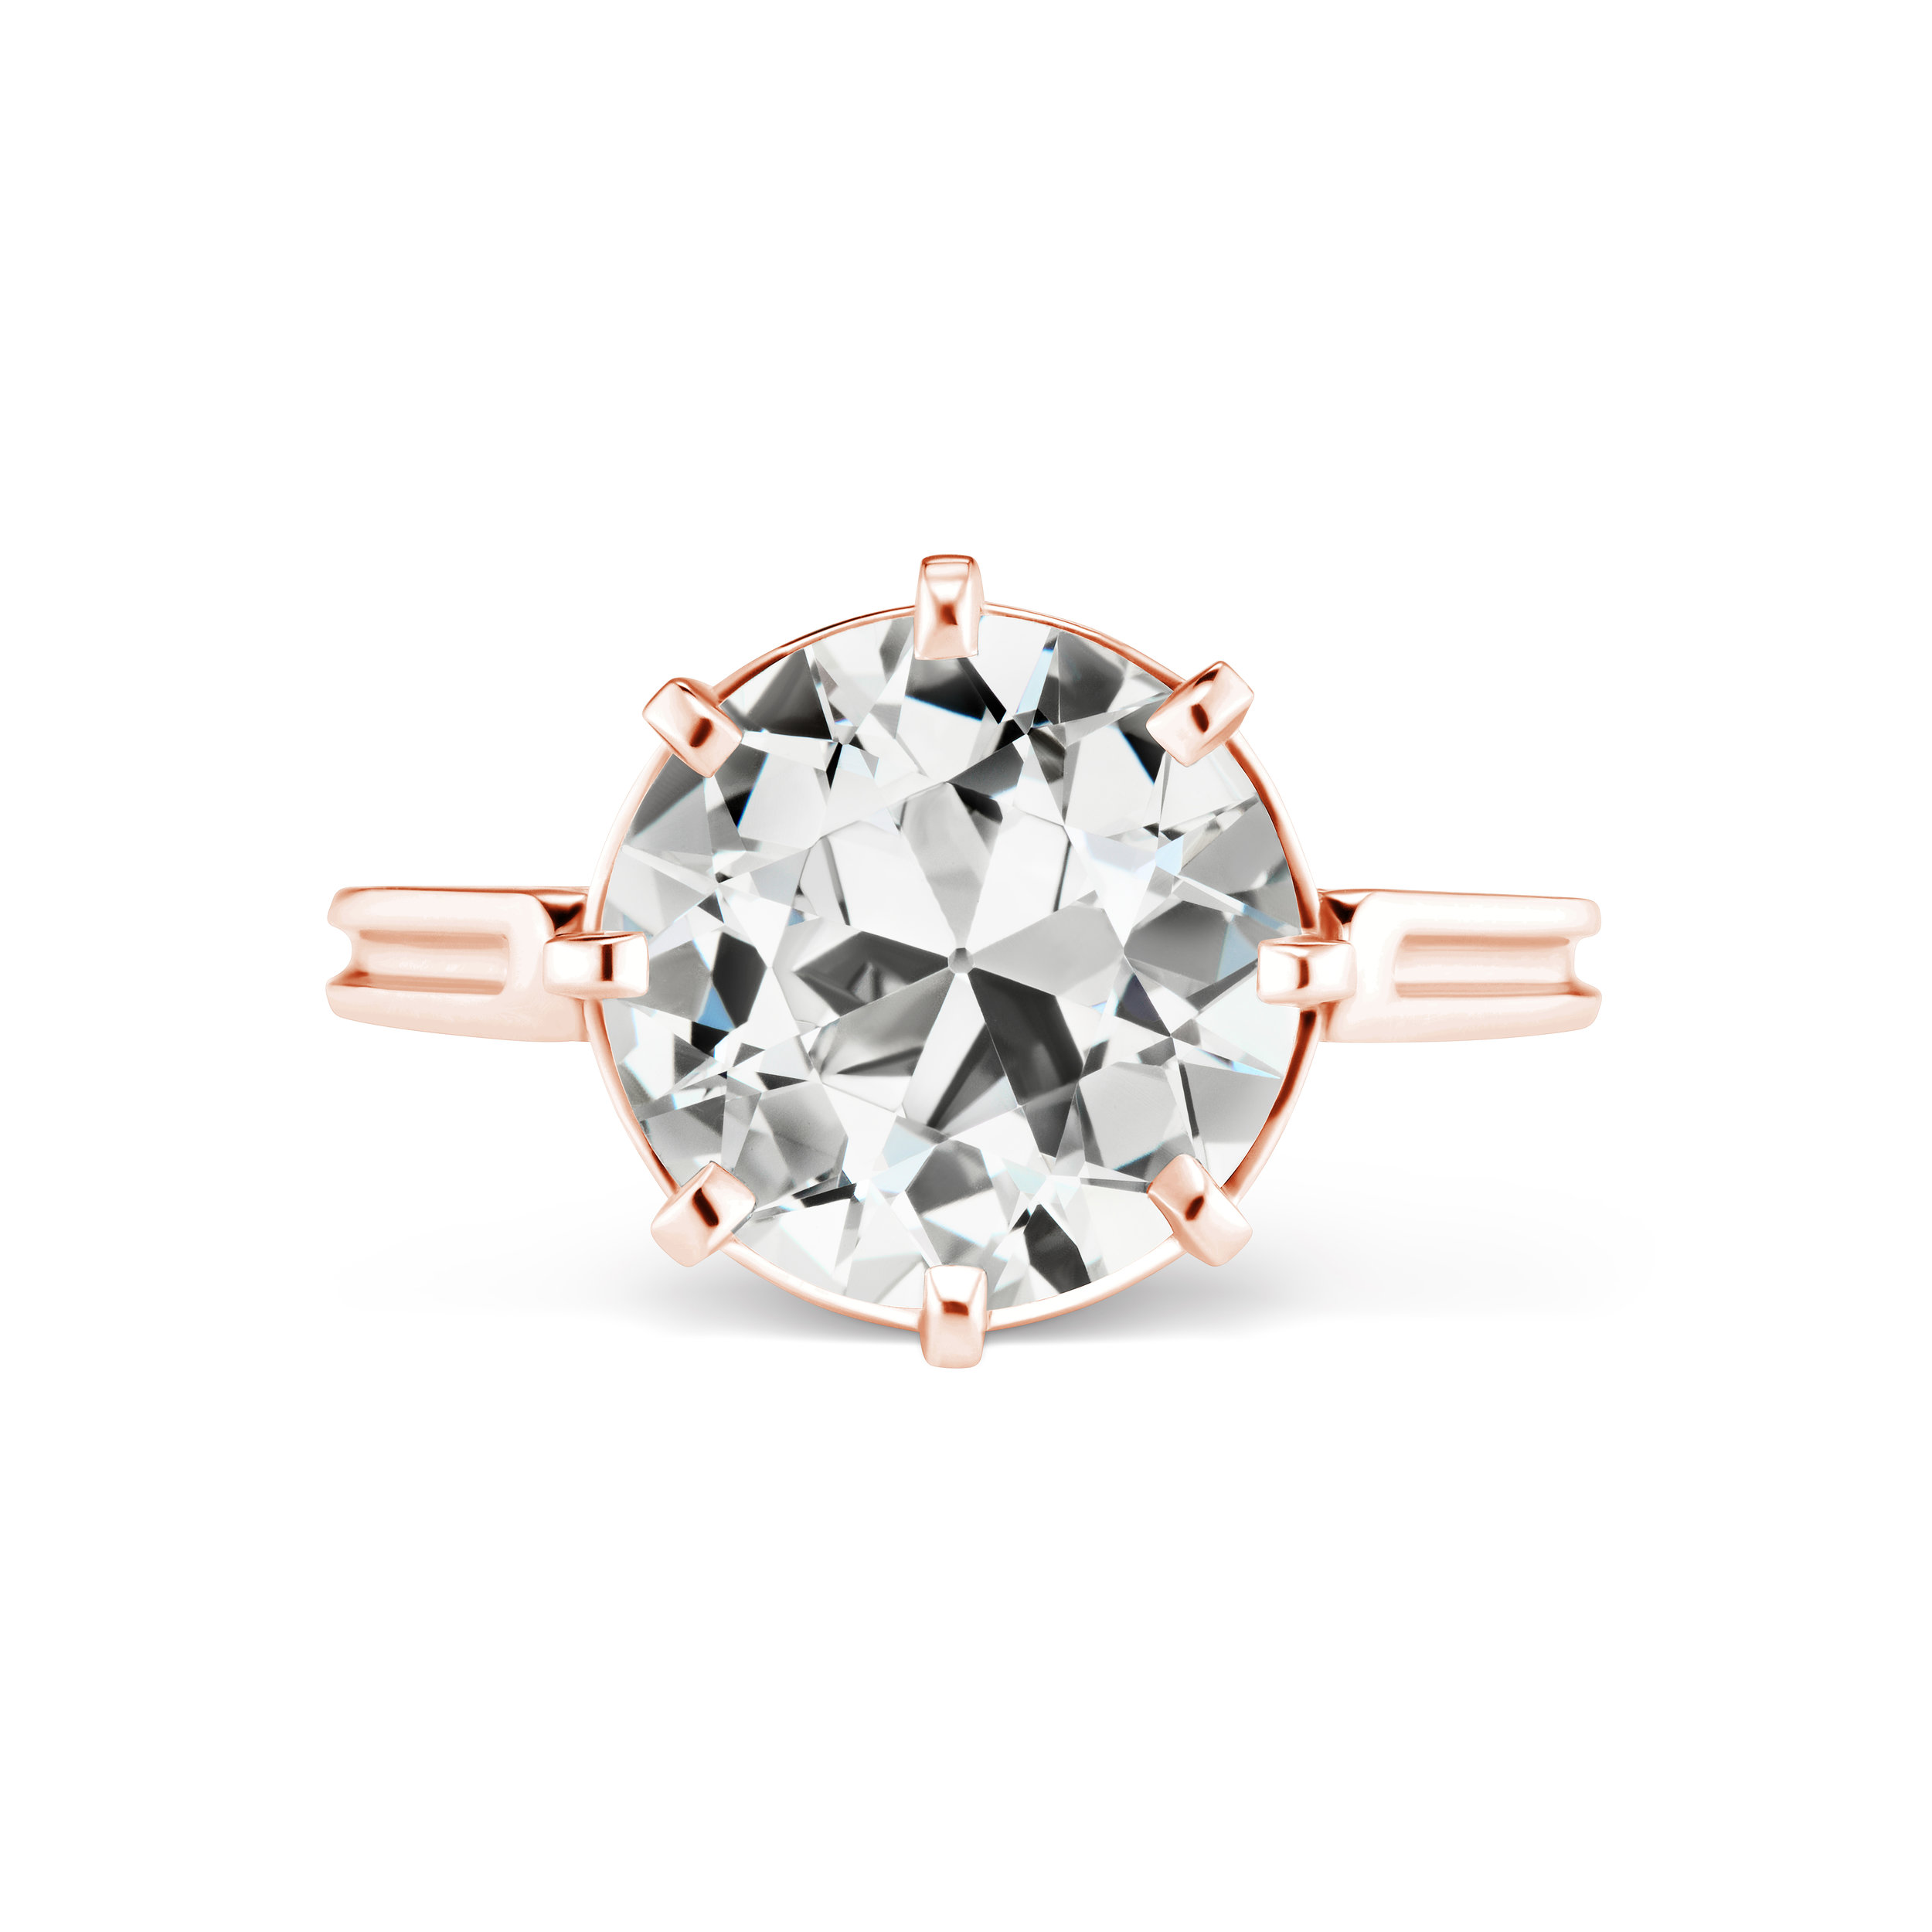 Reproduction of antique diamond ring, with Old European Cut diamond, mounted in rose gold.